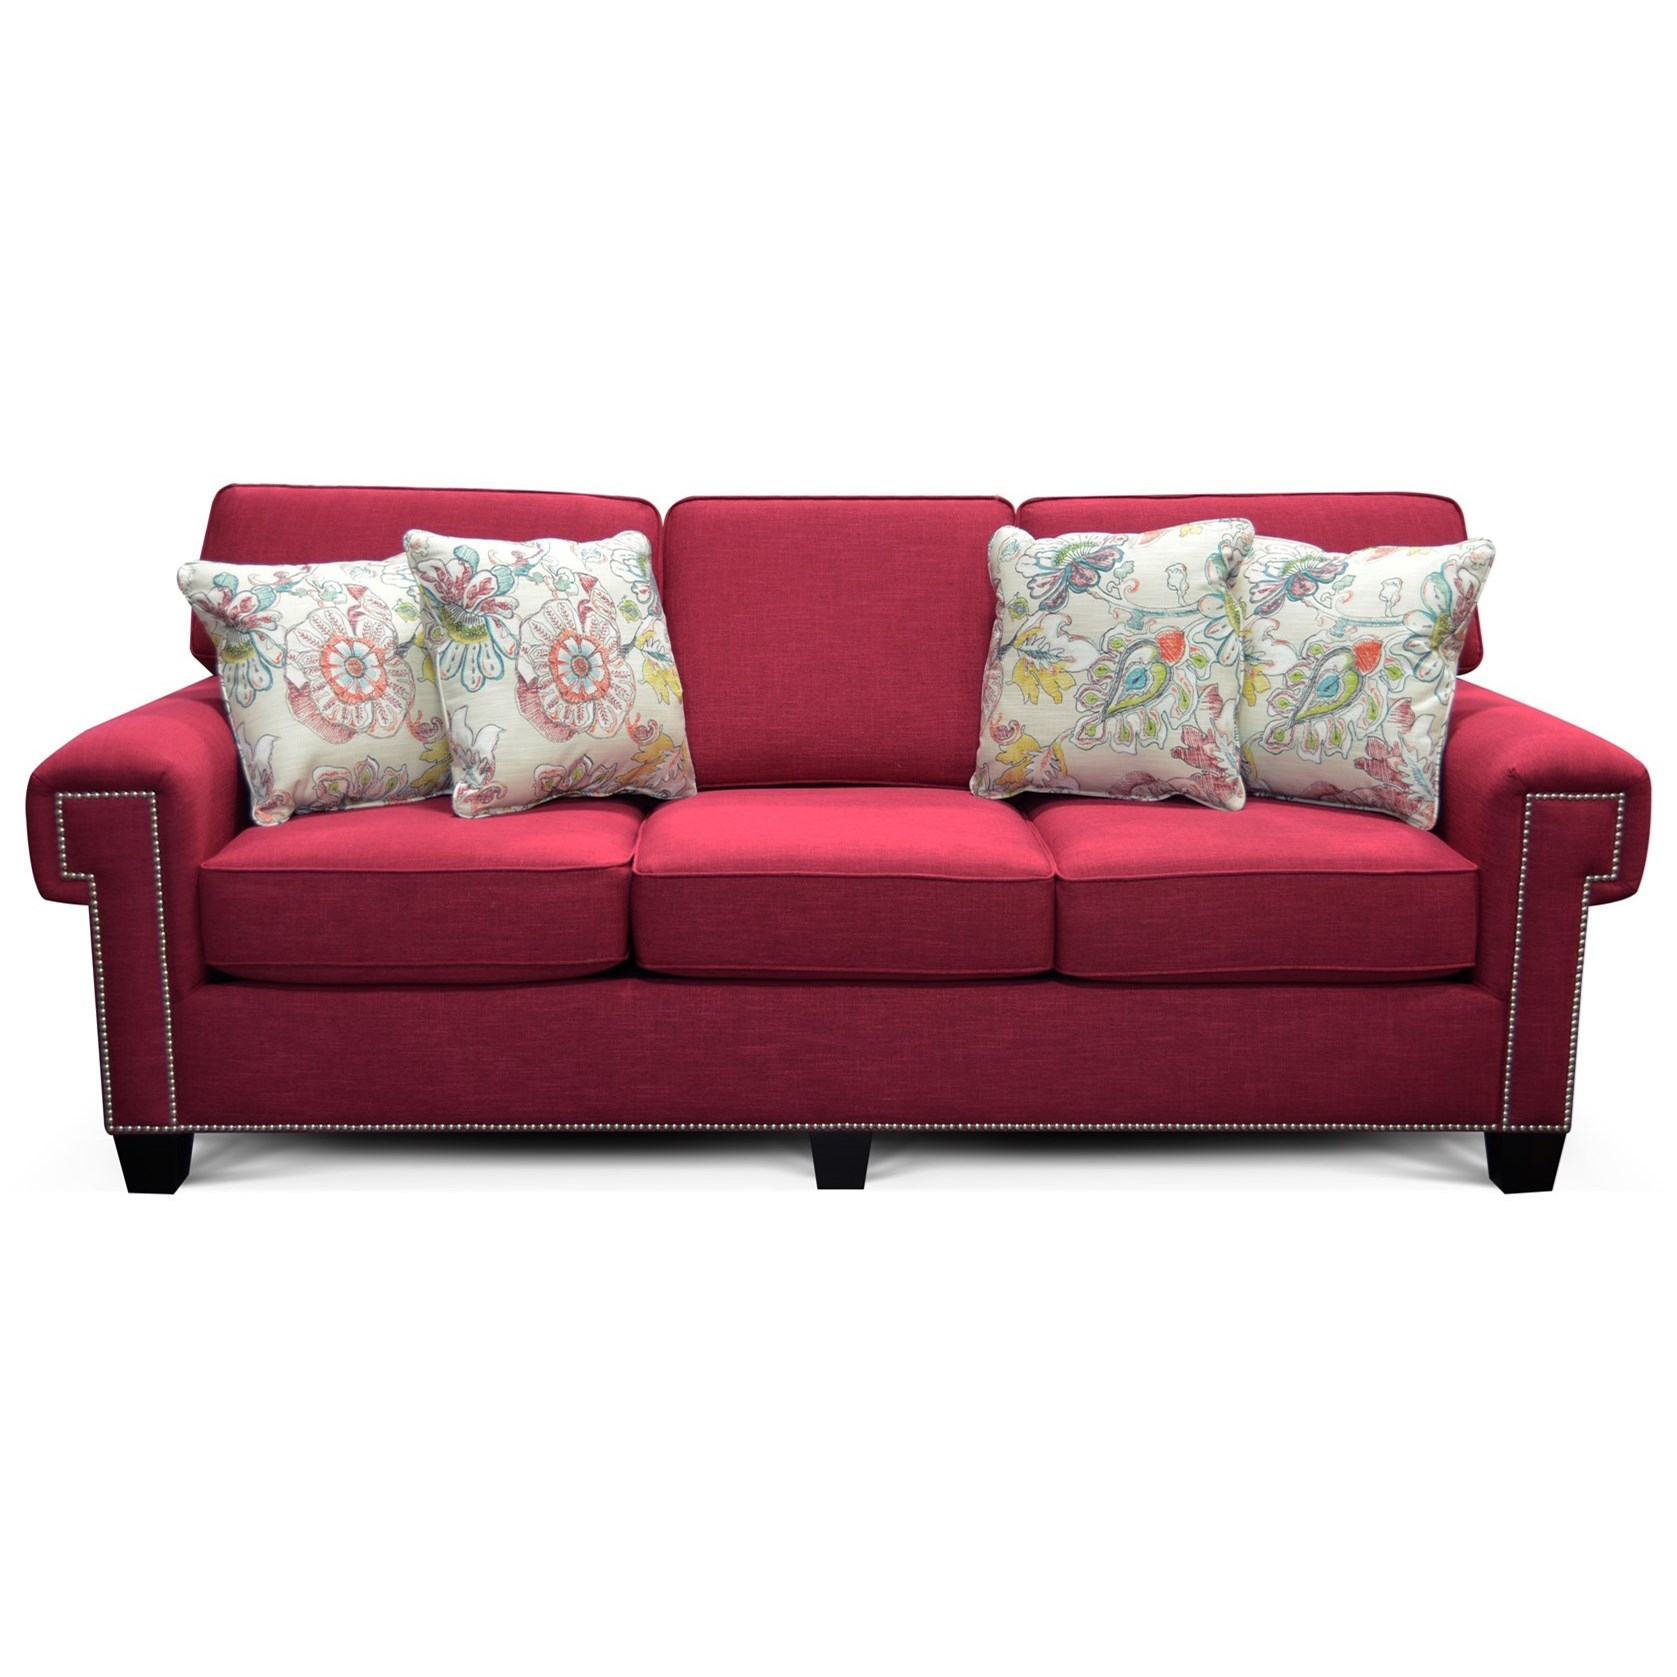 England Yonts Y205n Sofa With Nailhead Trim Furniture And Appliancemart Sofa